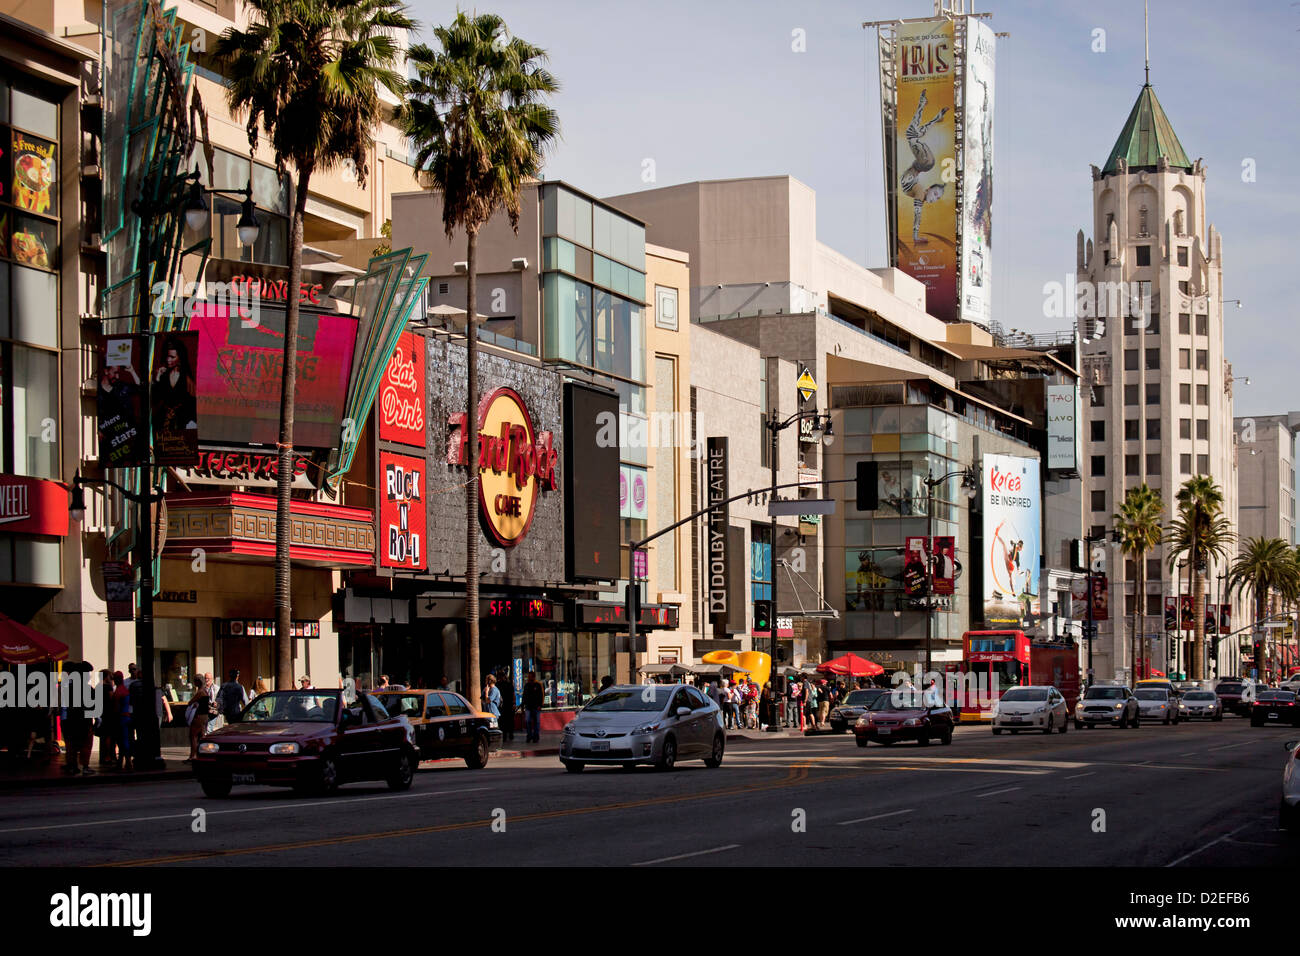 traffic on Hollywood Boulevard with Hard Rock Cafe and First National Bank Building in Hollywood, Los Angeles, California, - Stock Image